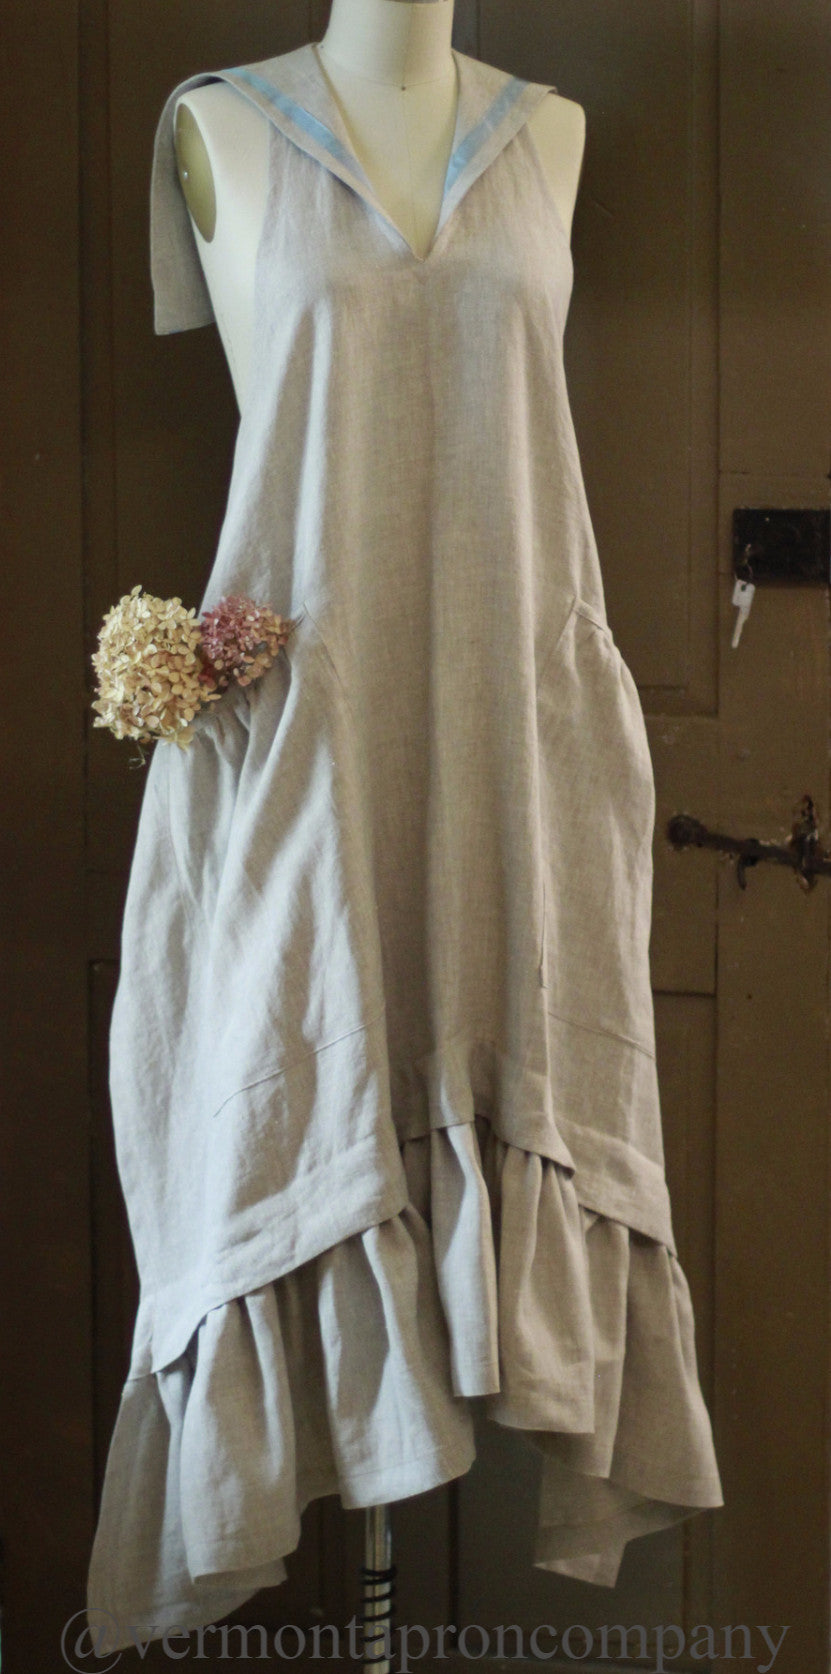 Linen Sailor Apron